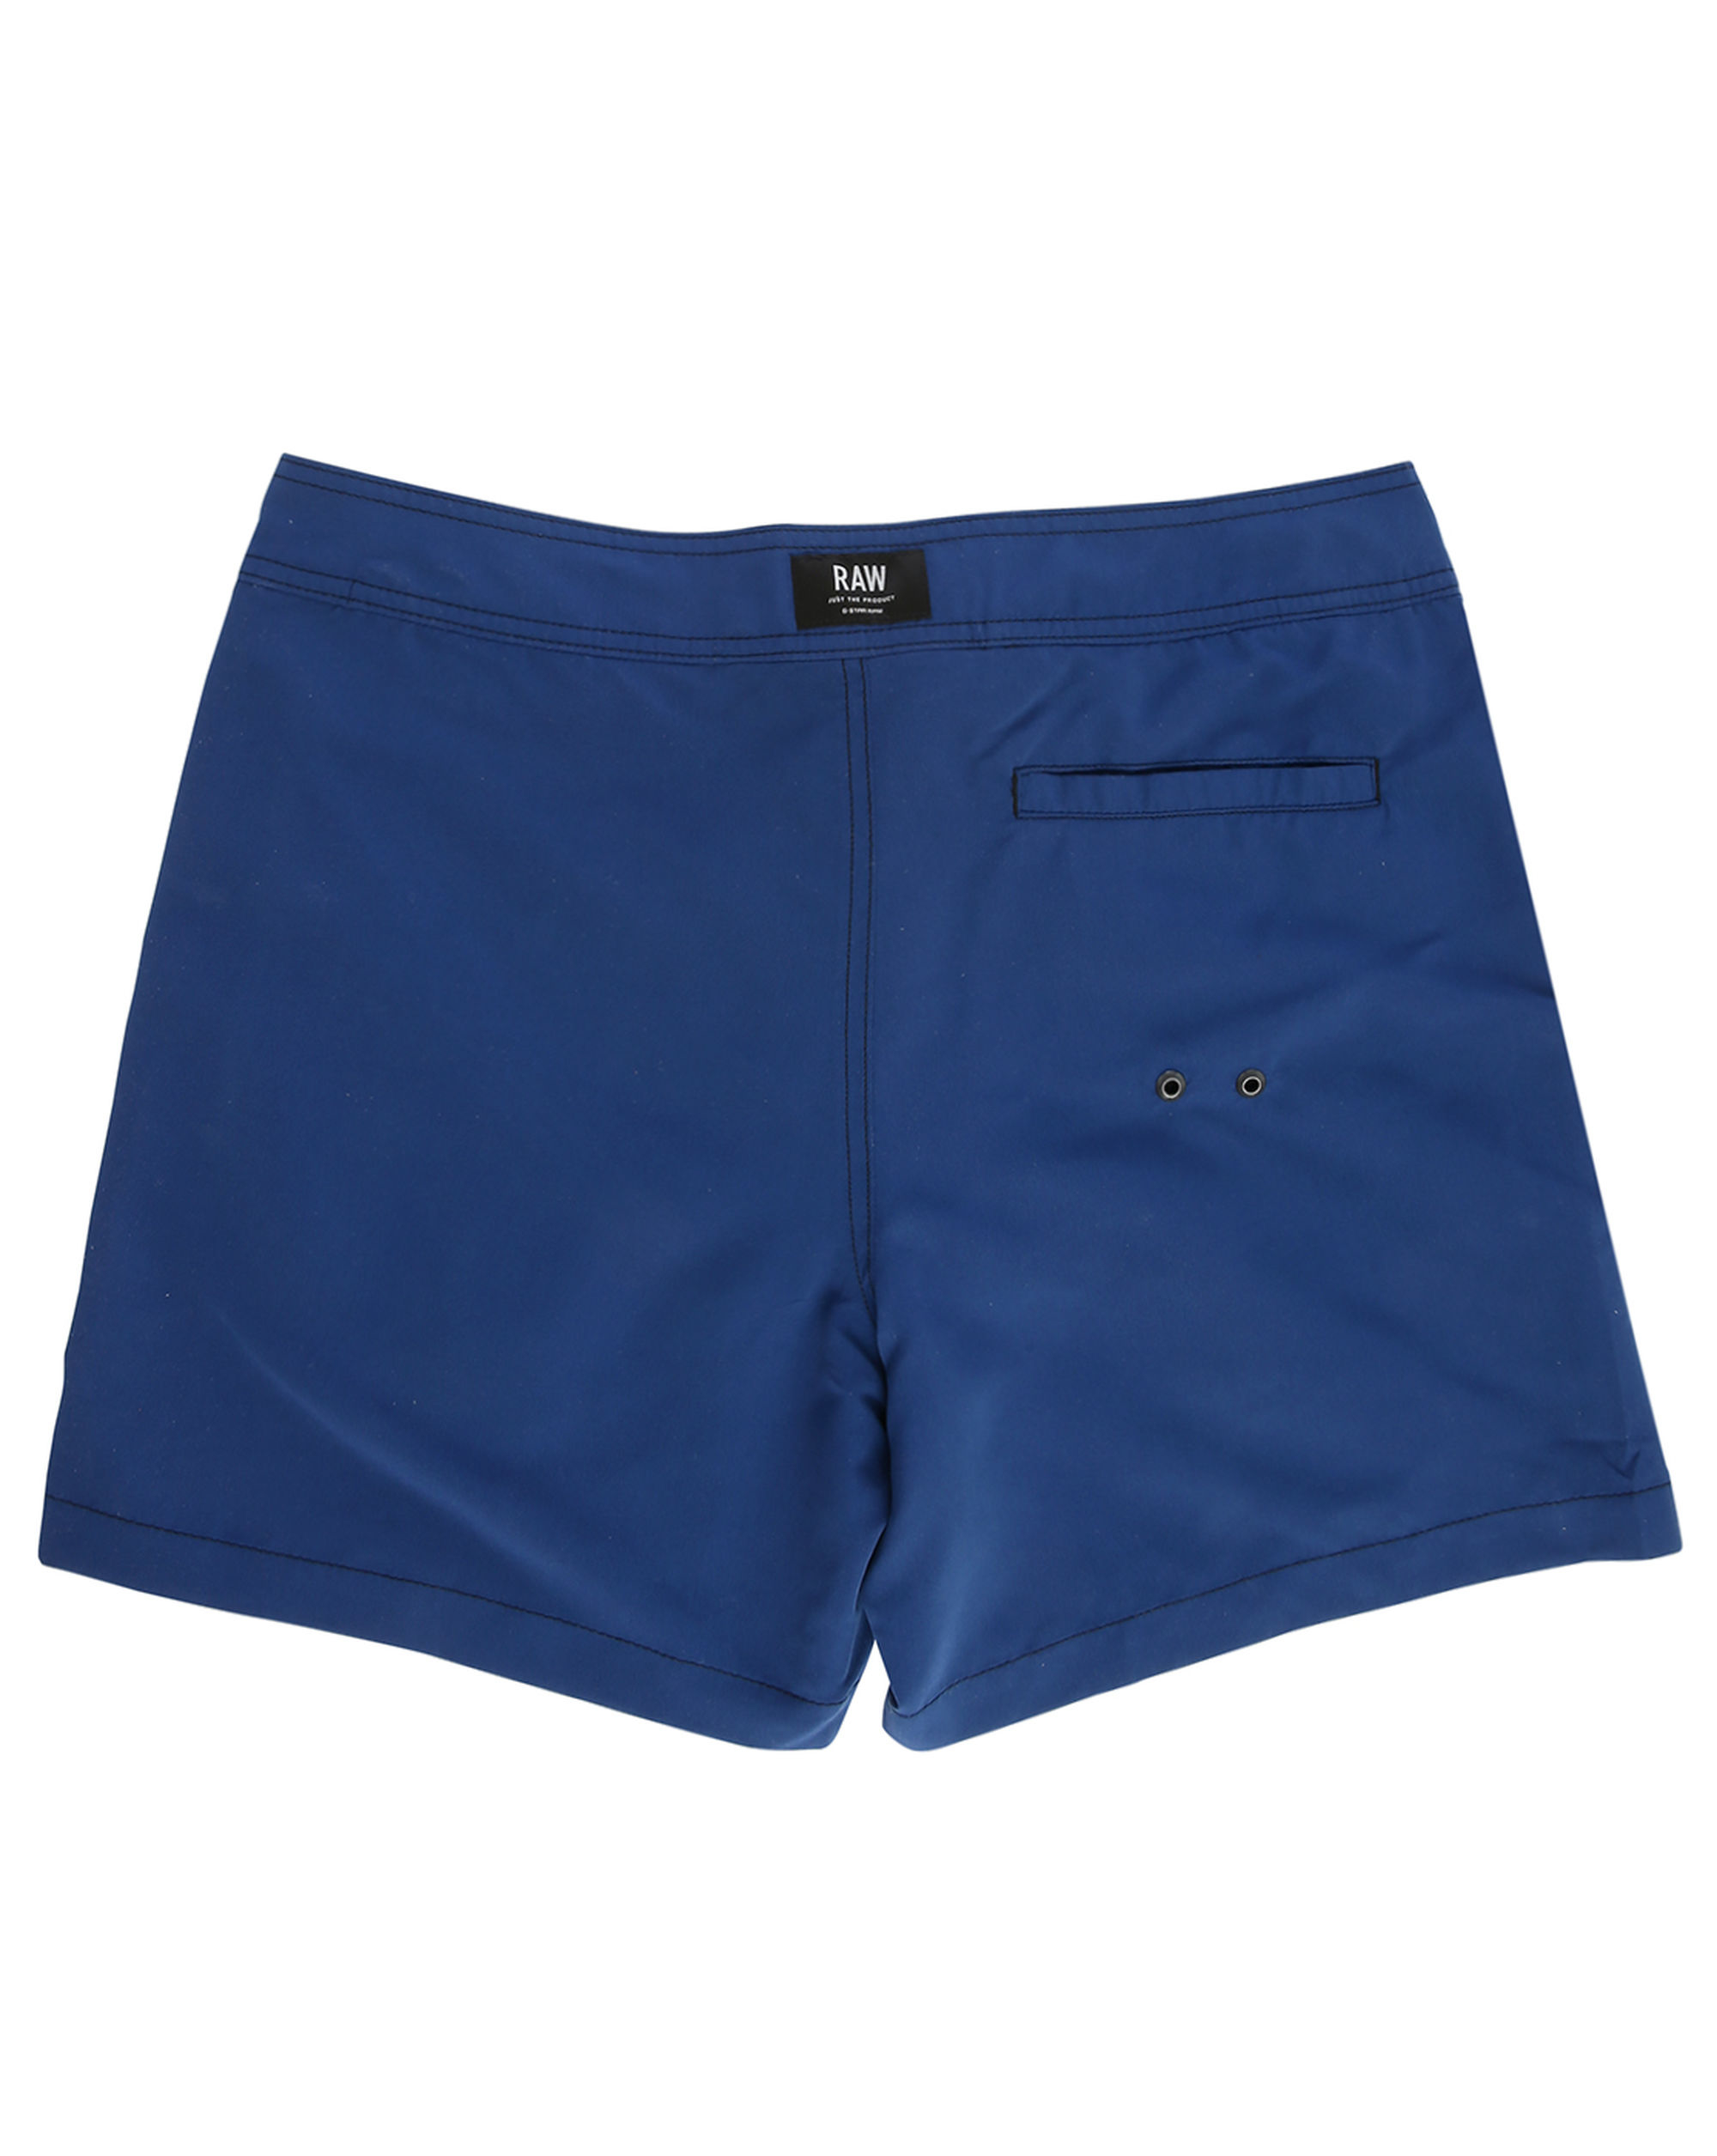 star raw navy devano patch logo swim shorts in blue for men lyst. Black Bedroom Furniture Sets. Home Design Ideas